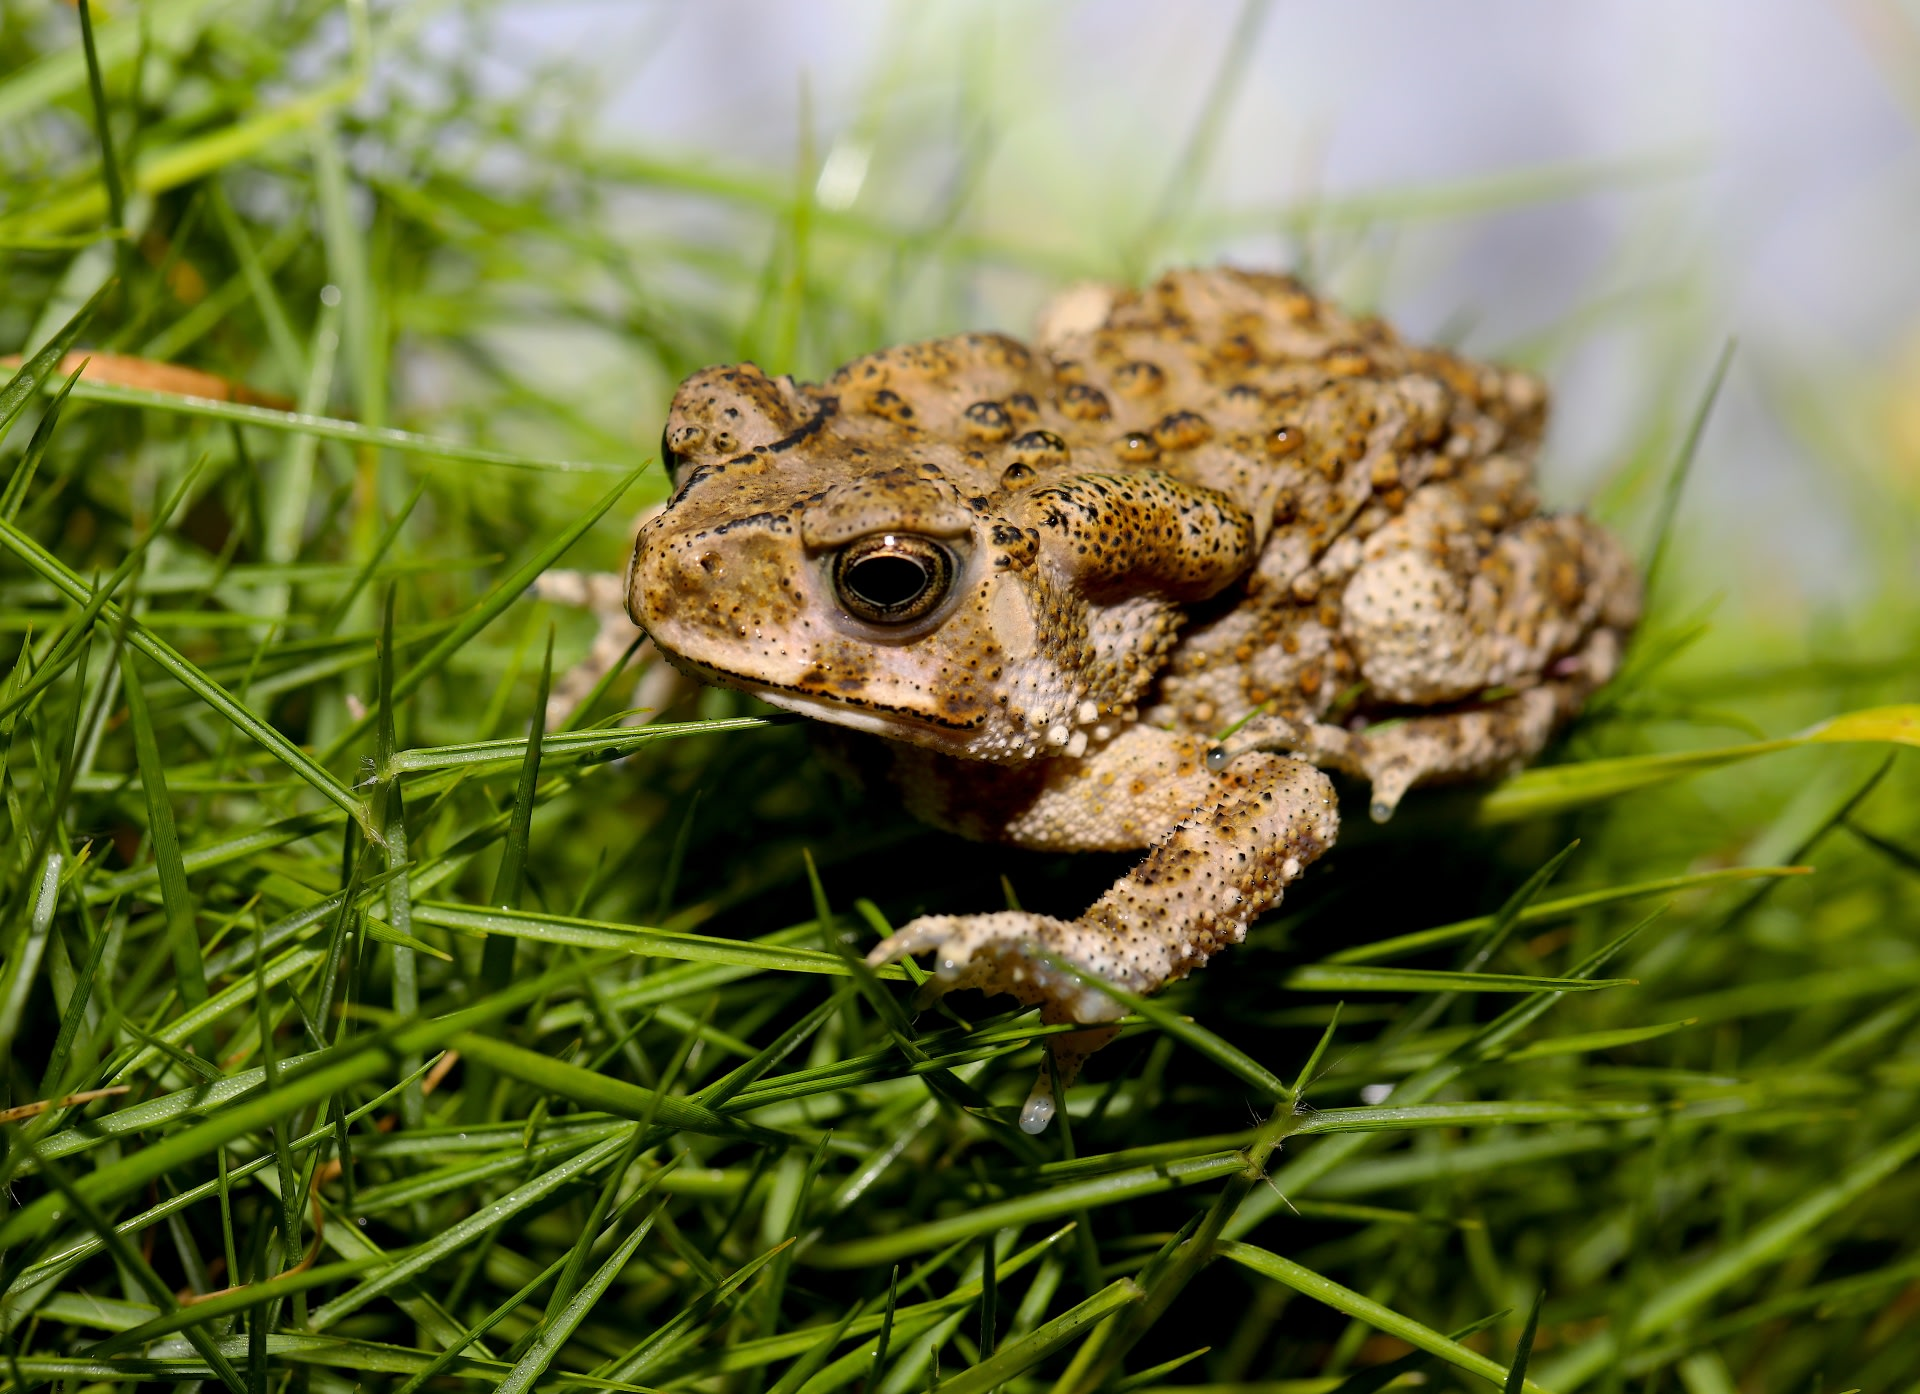 The Indian toad is highly adaptable to varied environments and is seen across diverse habitats from riverbanks, and forests to urban areas. Photo: Tamal Raha  Small green tree frogs are adept climbers with large webbed feet, and sticky toe-pads that help them scale incredible heights. Cover photo: Tamal Raha